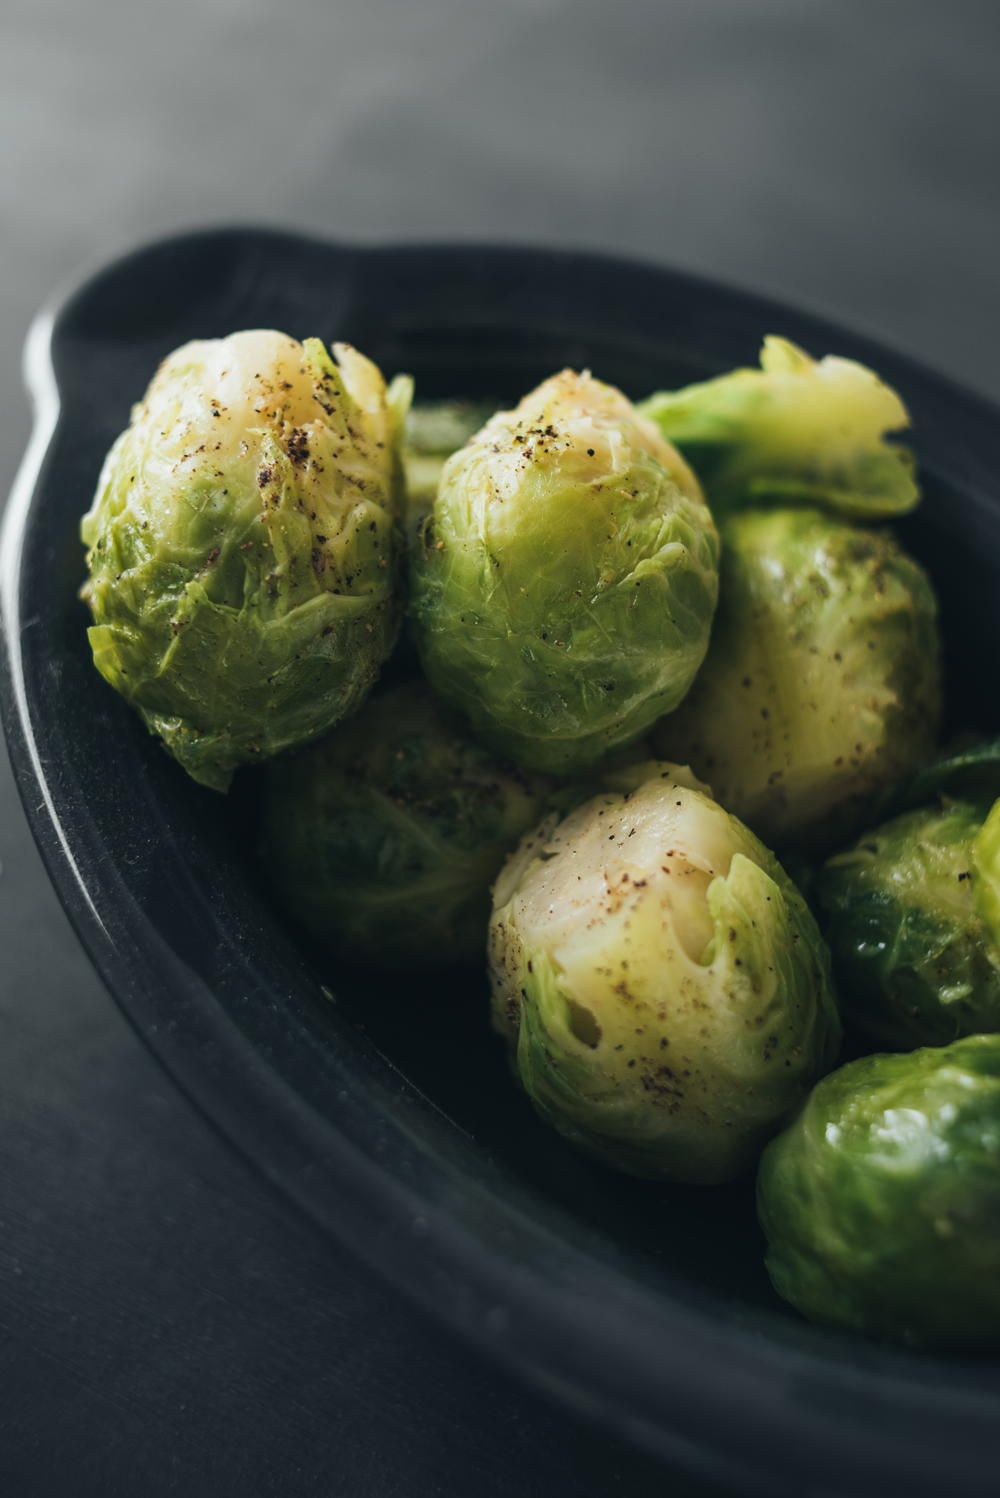 boiled brussels sprouts